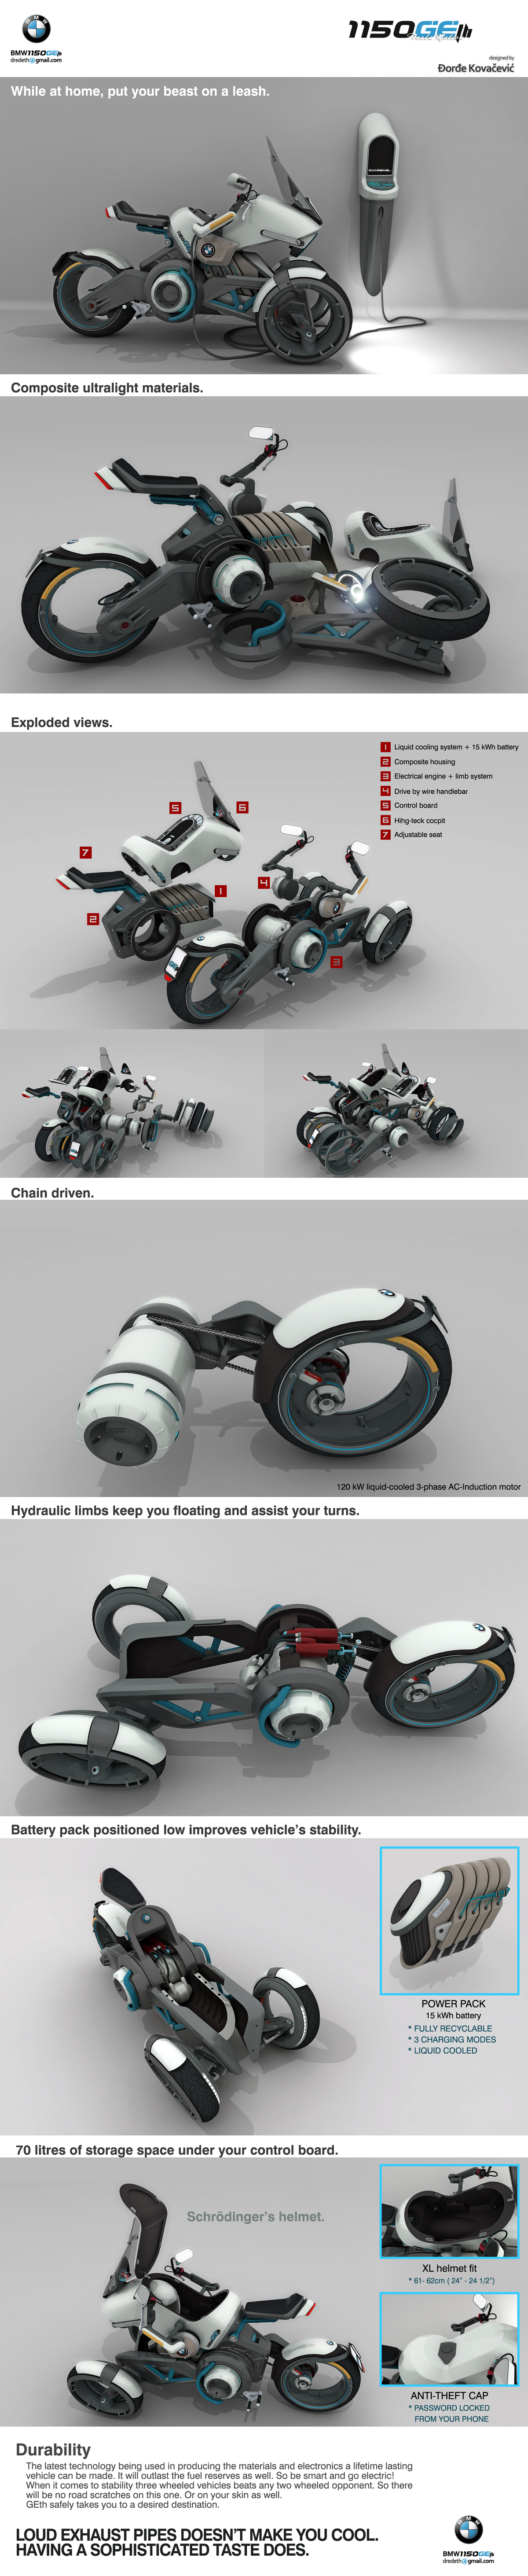 Bmw 1150geth Electric Motorcycle On Behance Engine Exploded View